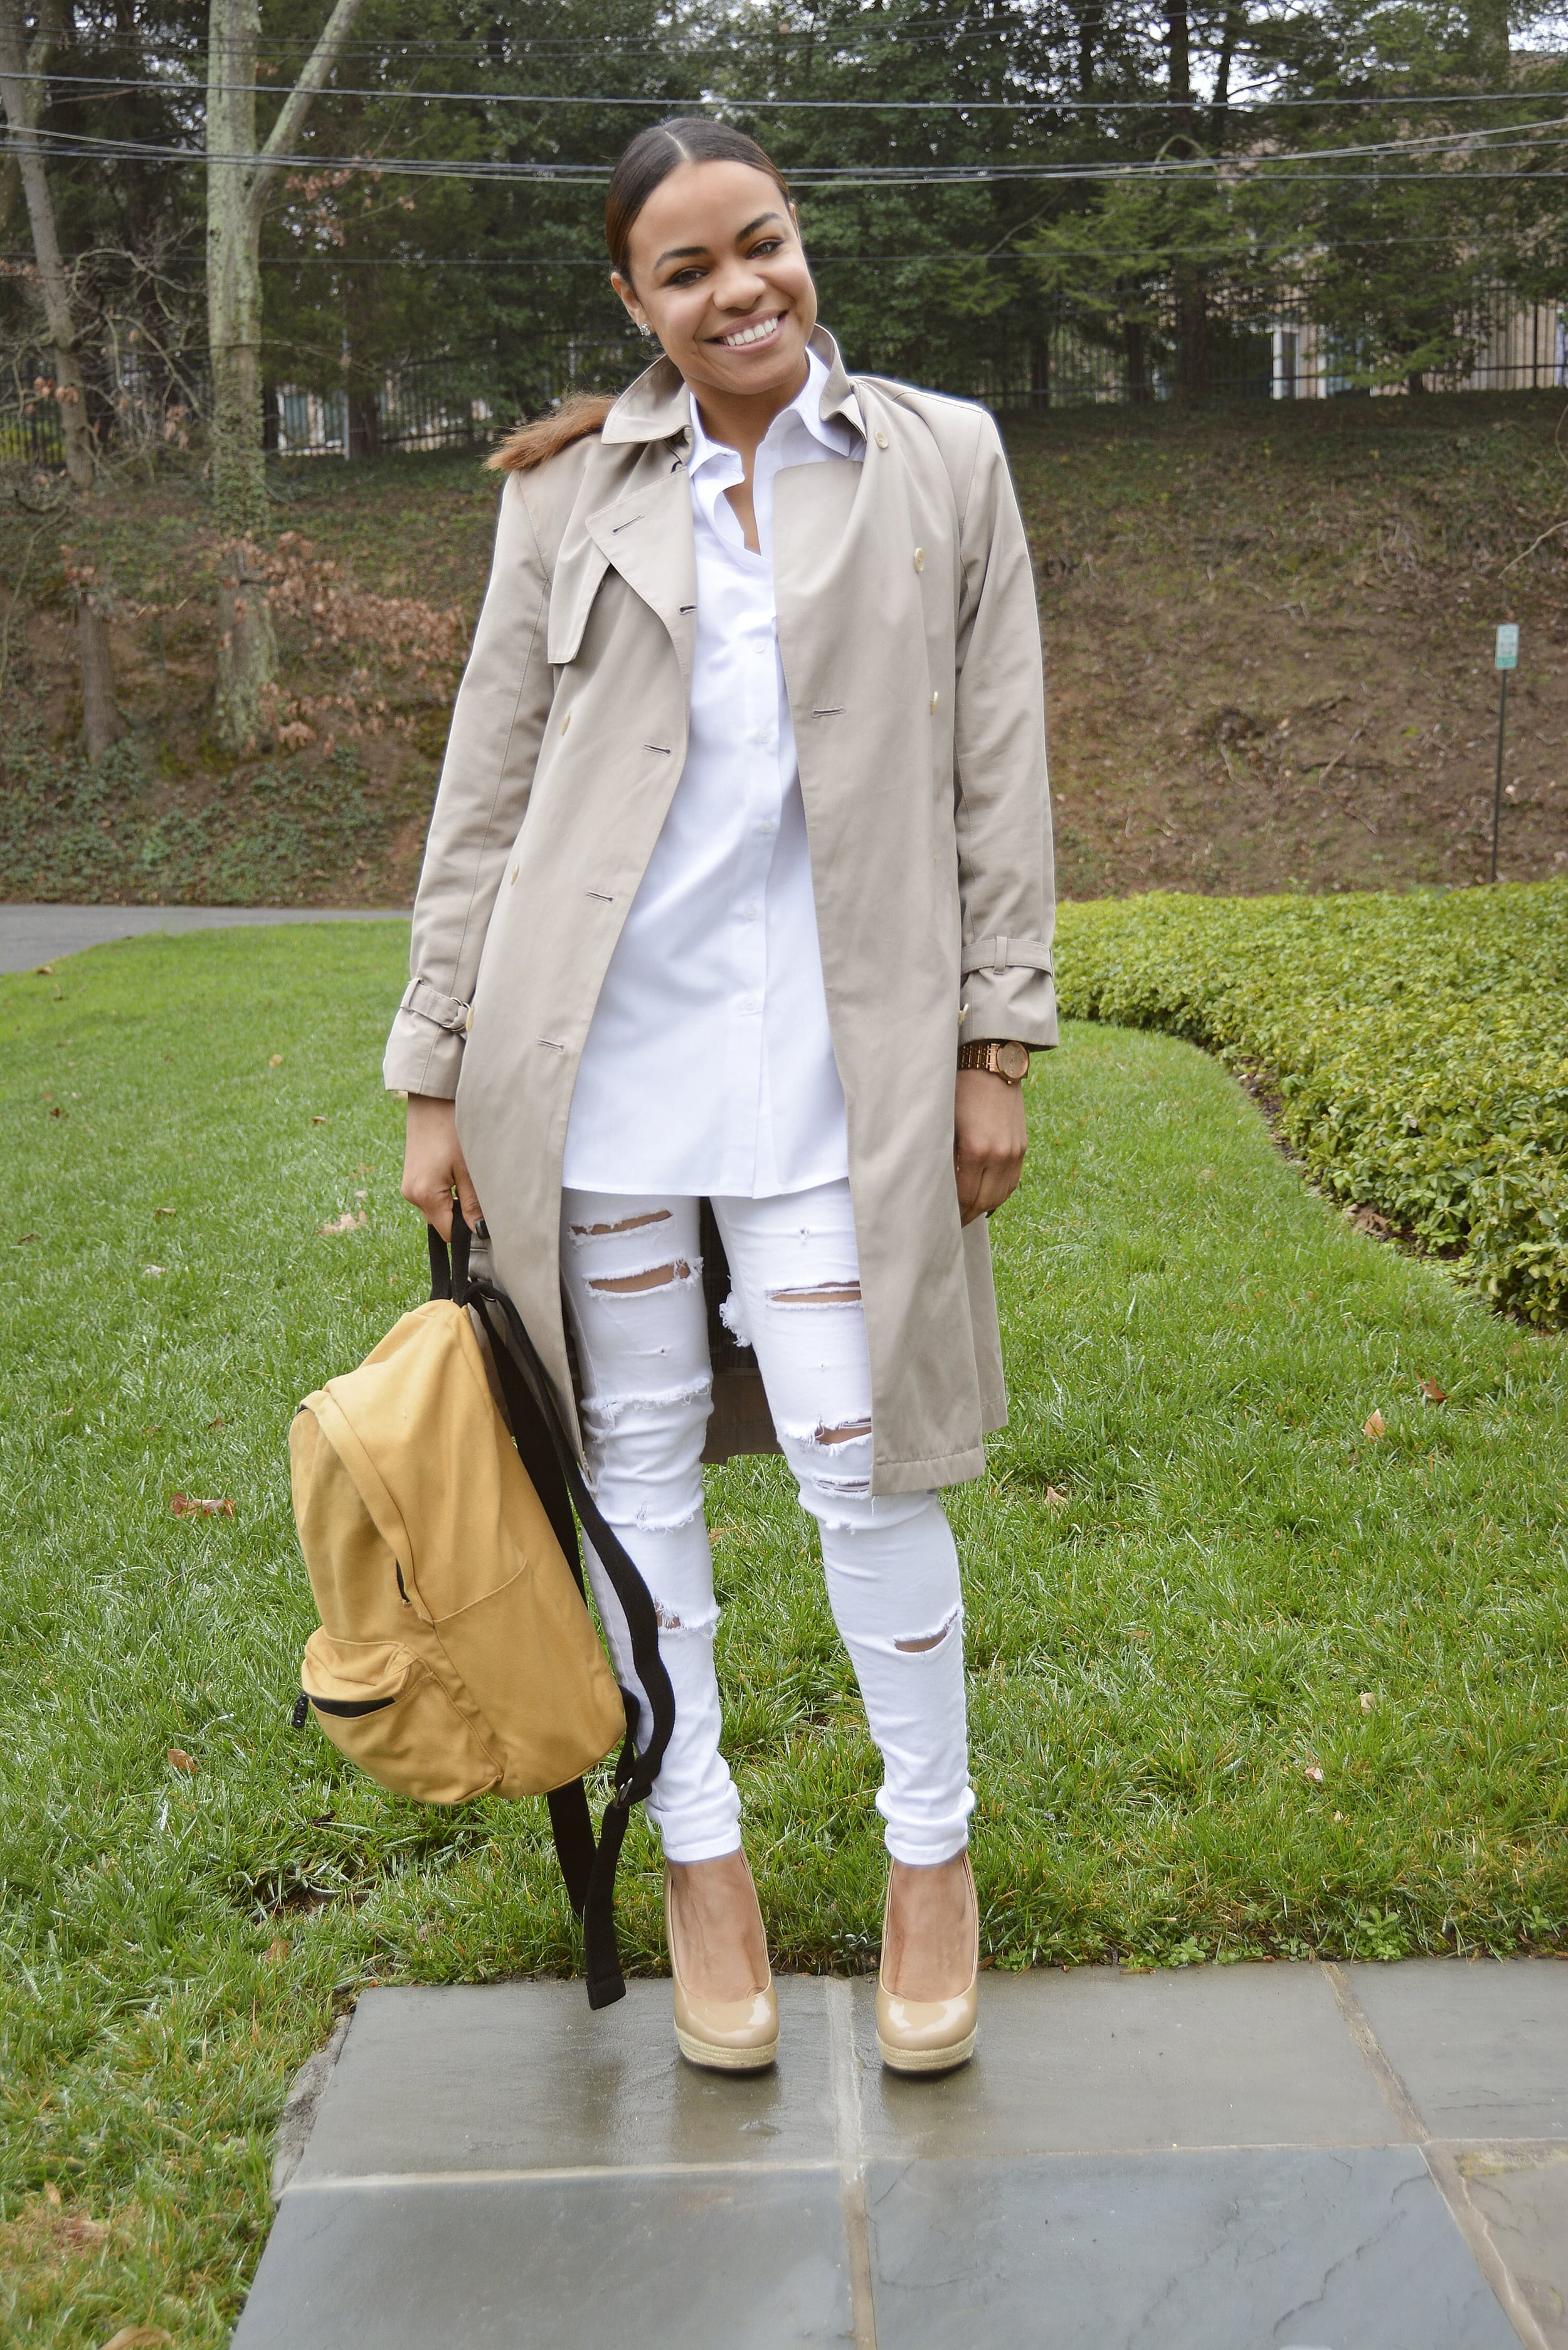 wearing: Zara pants, Betsy Johnson shoes, ASOS top, London Fog trench coat, bag from Urban Outfitters